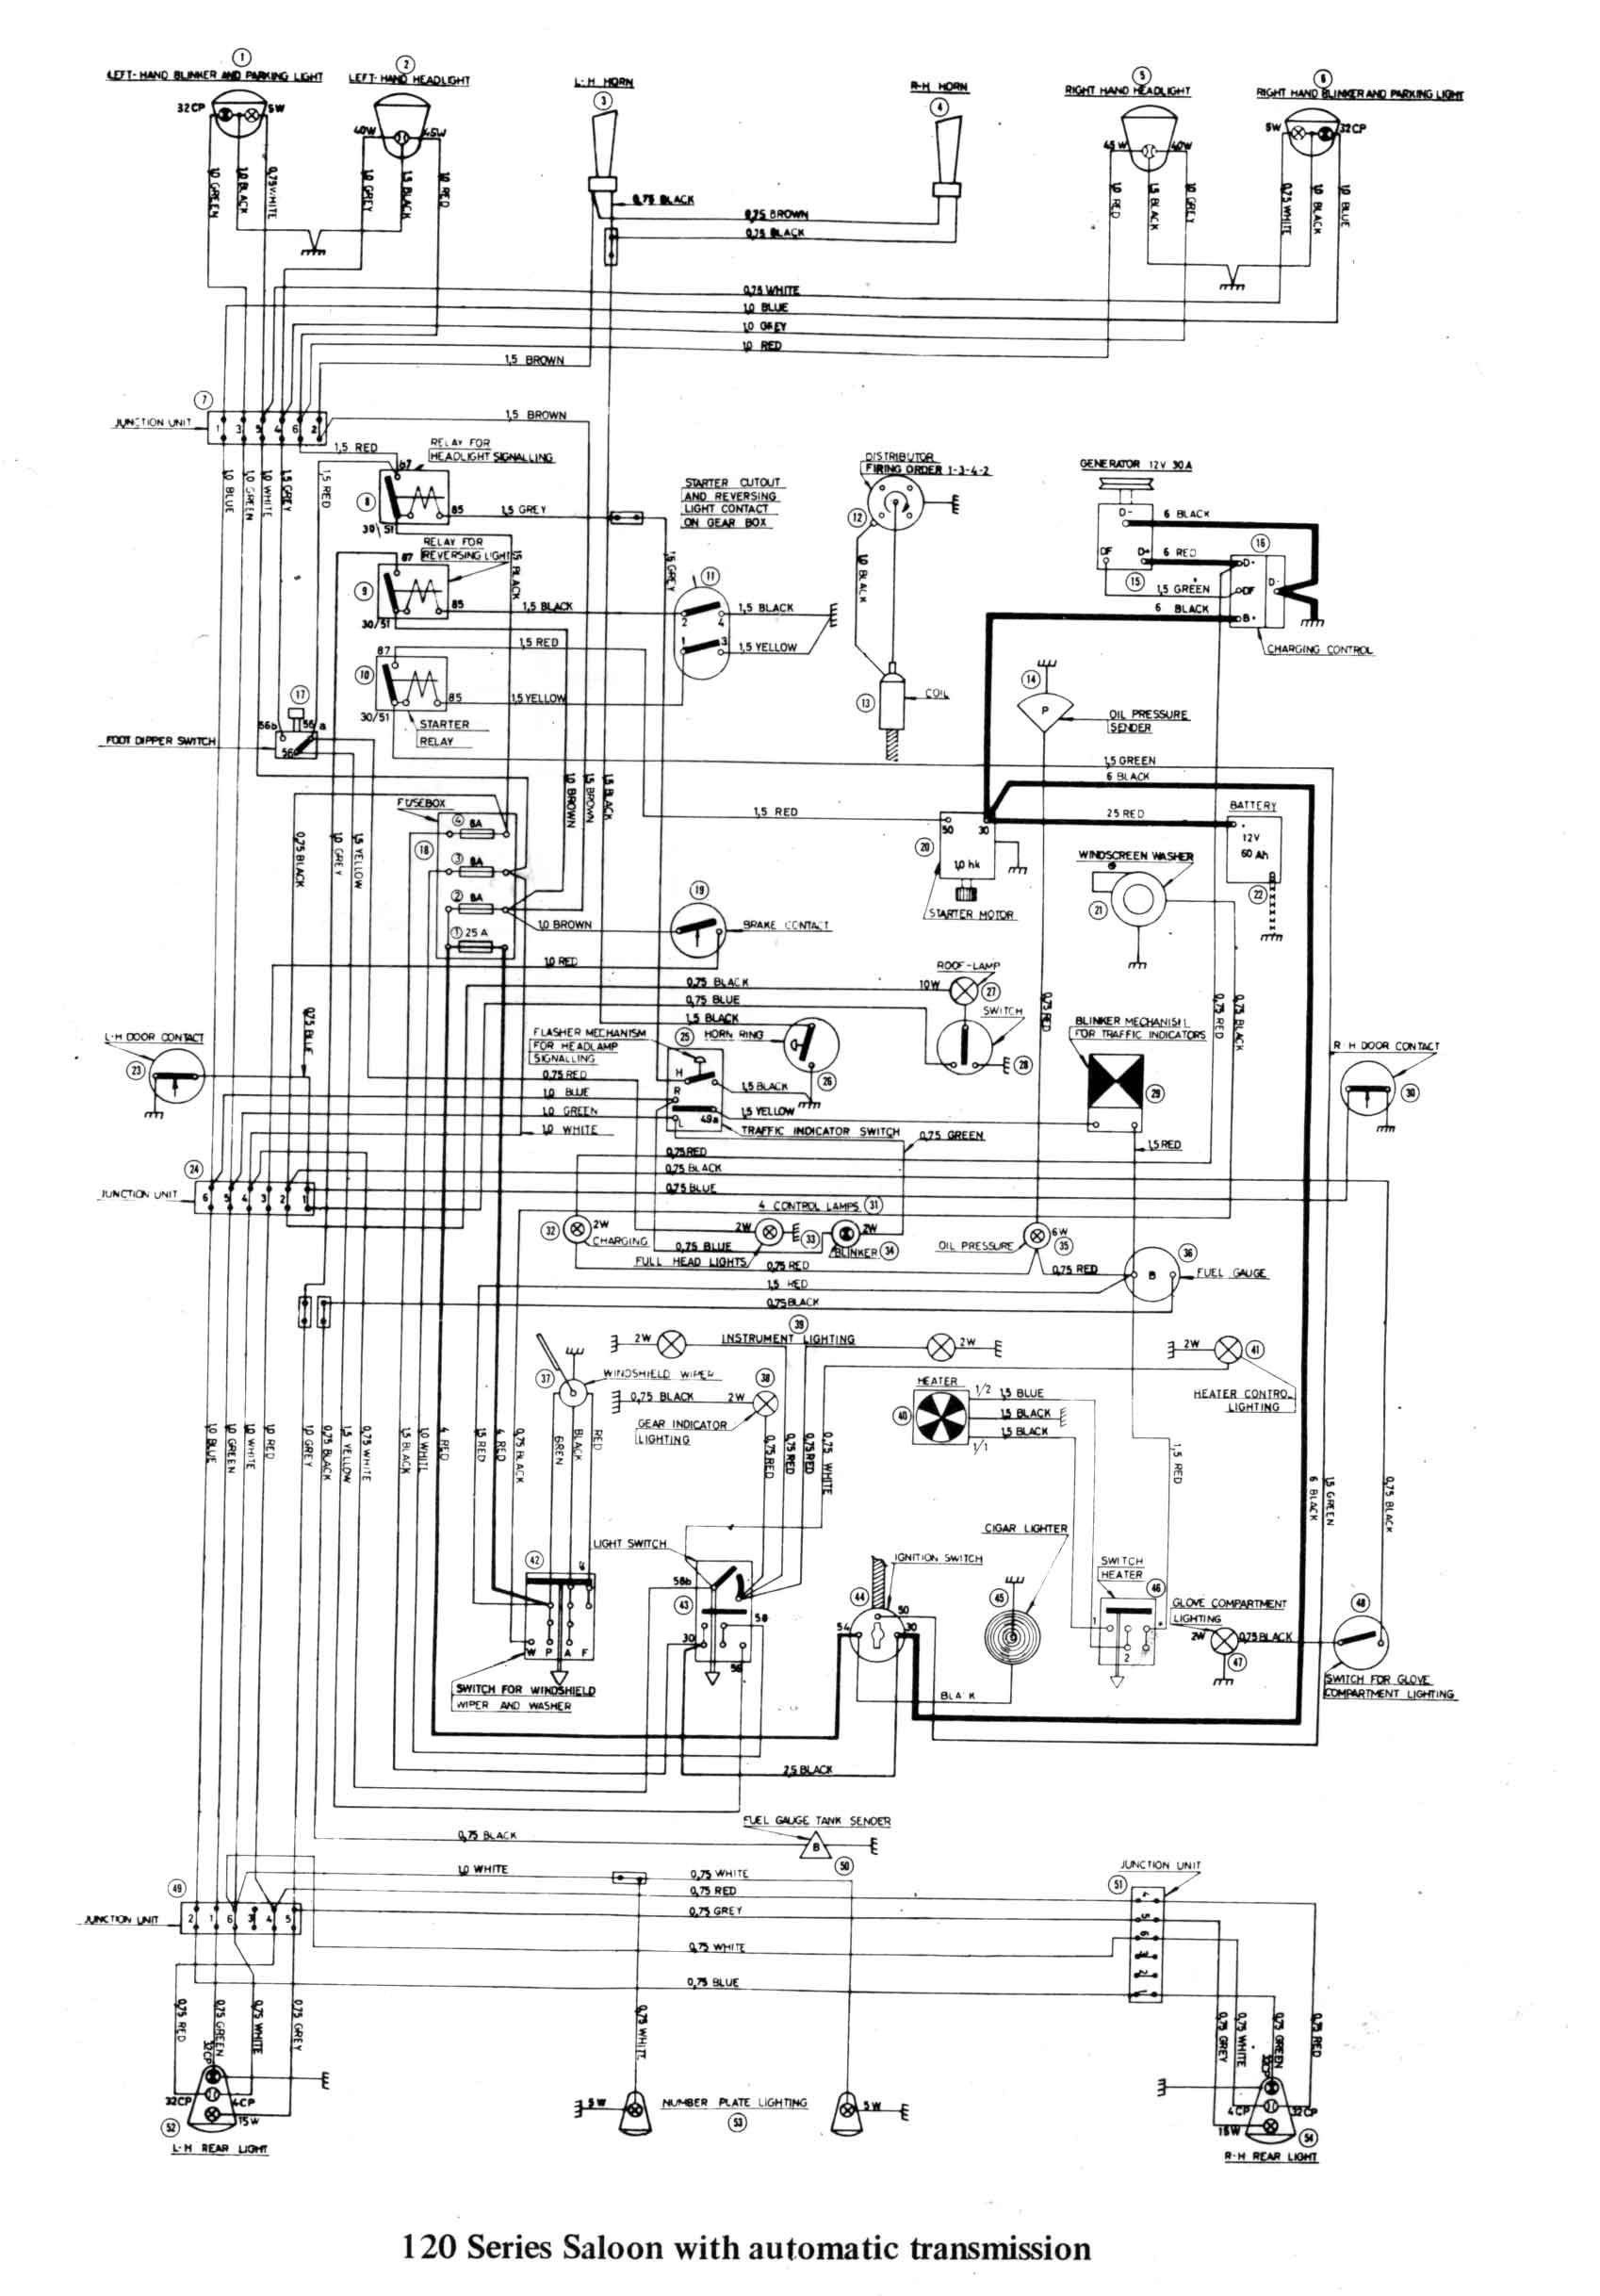 94 Mack Fuse Box | Wiring Library - Freightliner Headlight Wiring Diagram